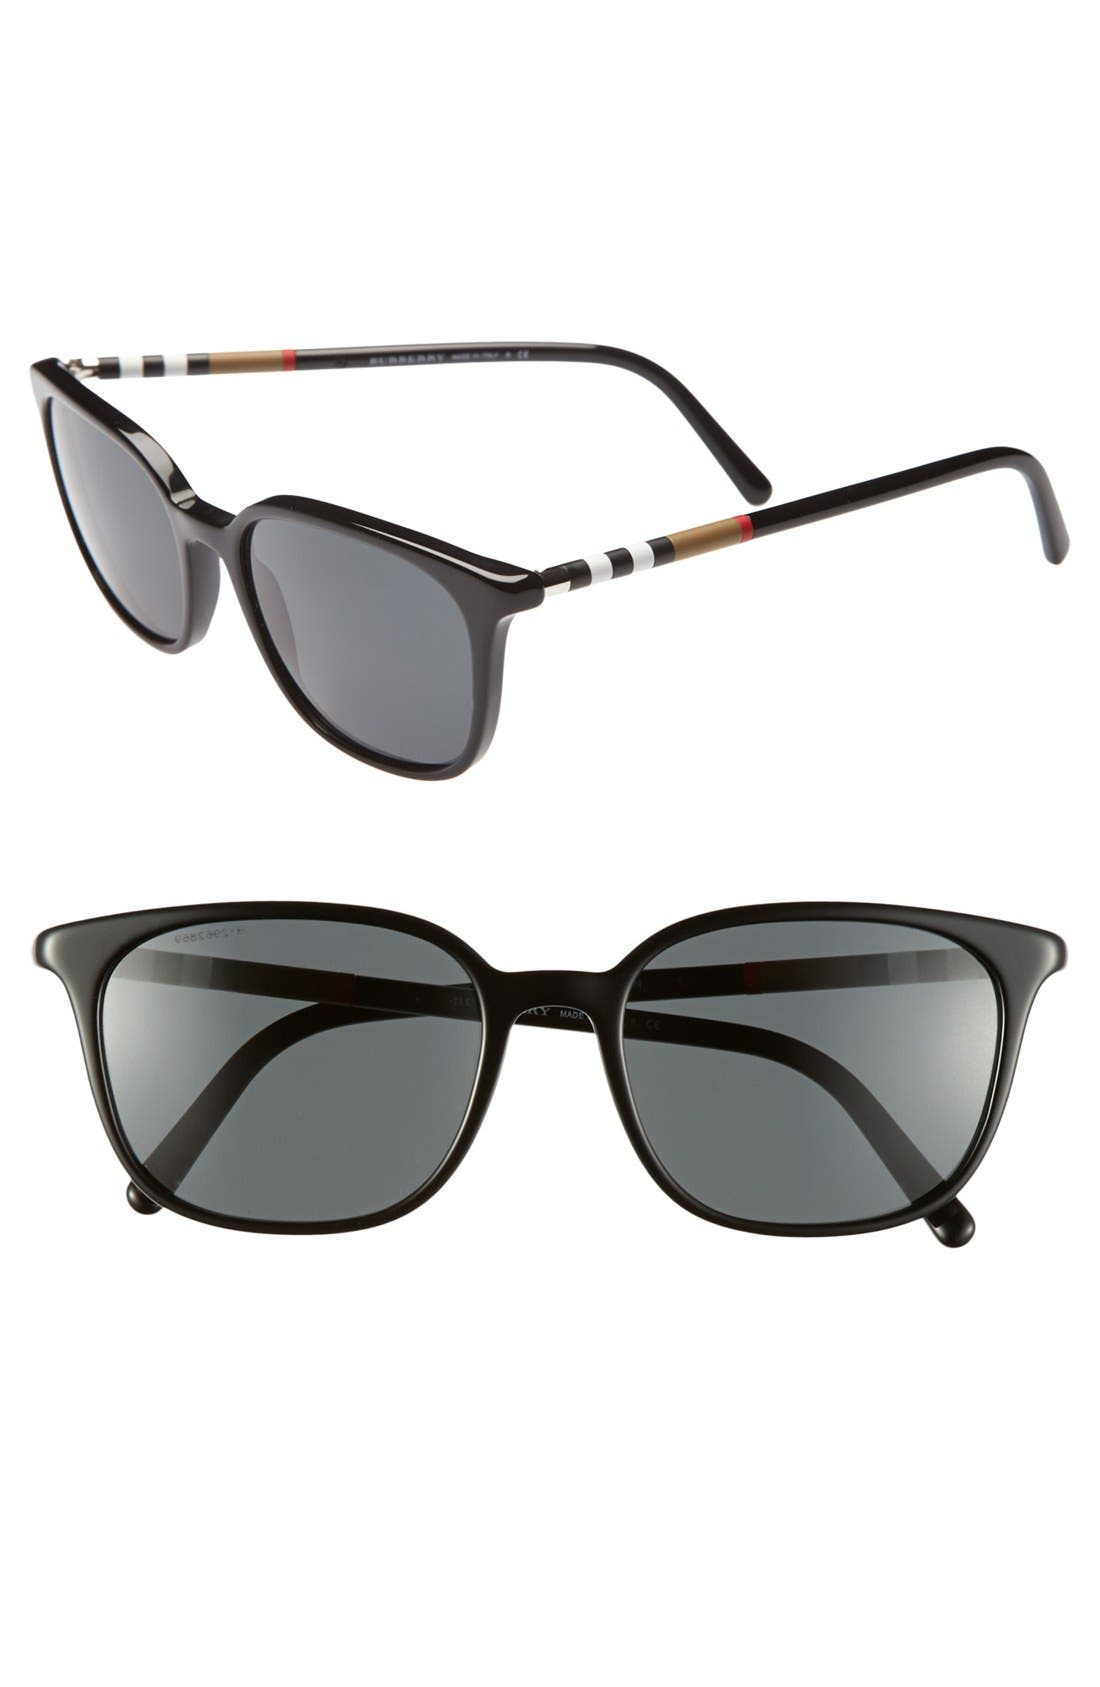 Alternate Image 1 Selected - Burberry 54mm Retro Sunglasses